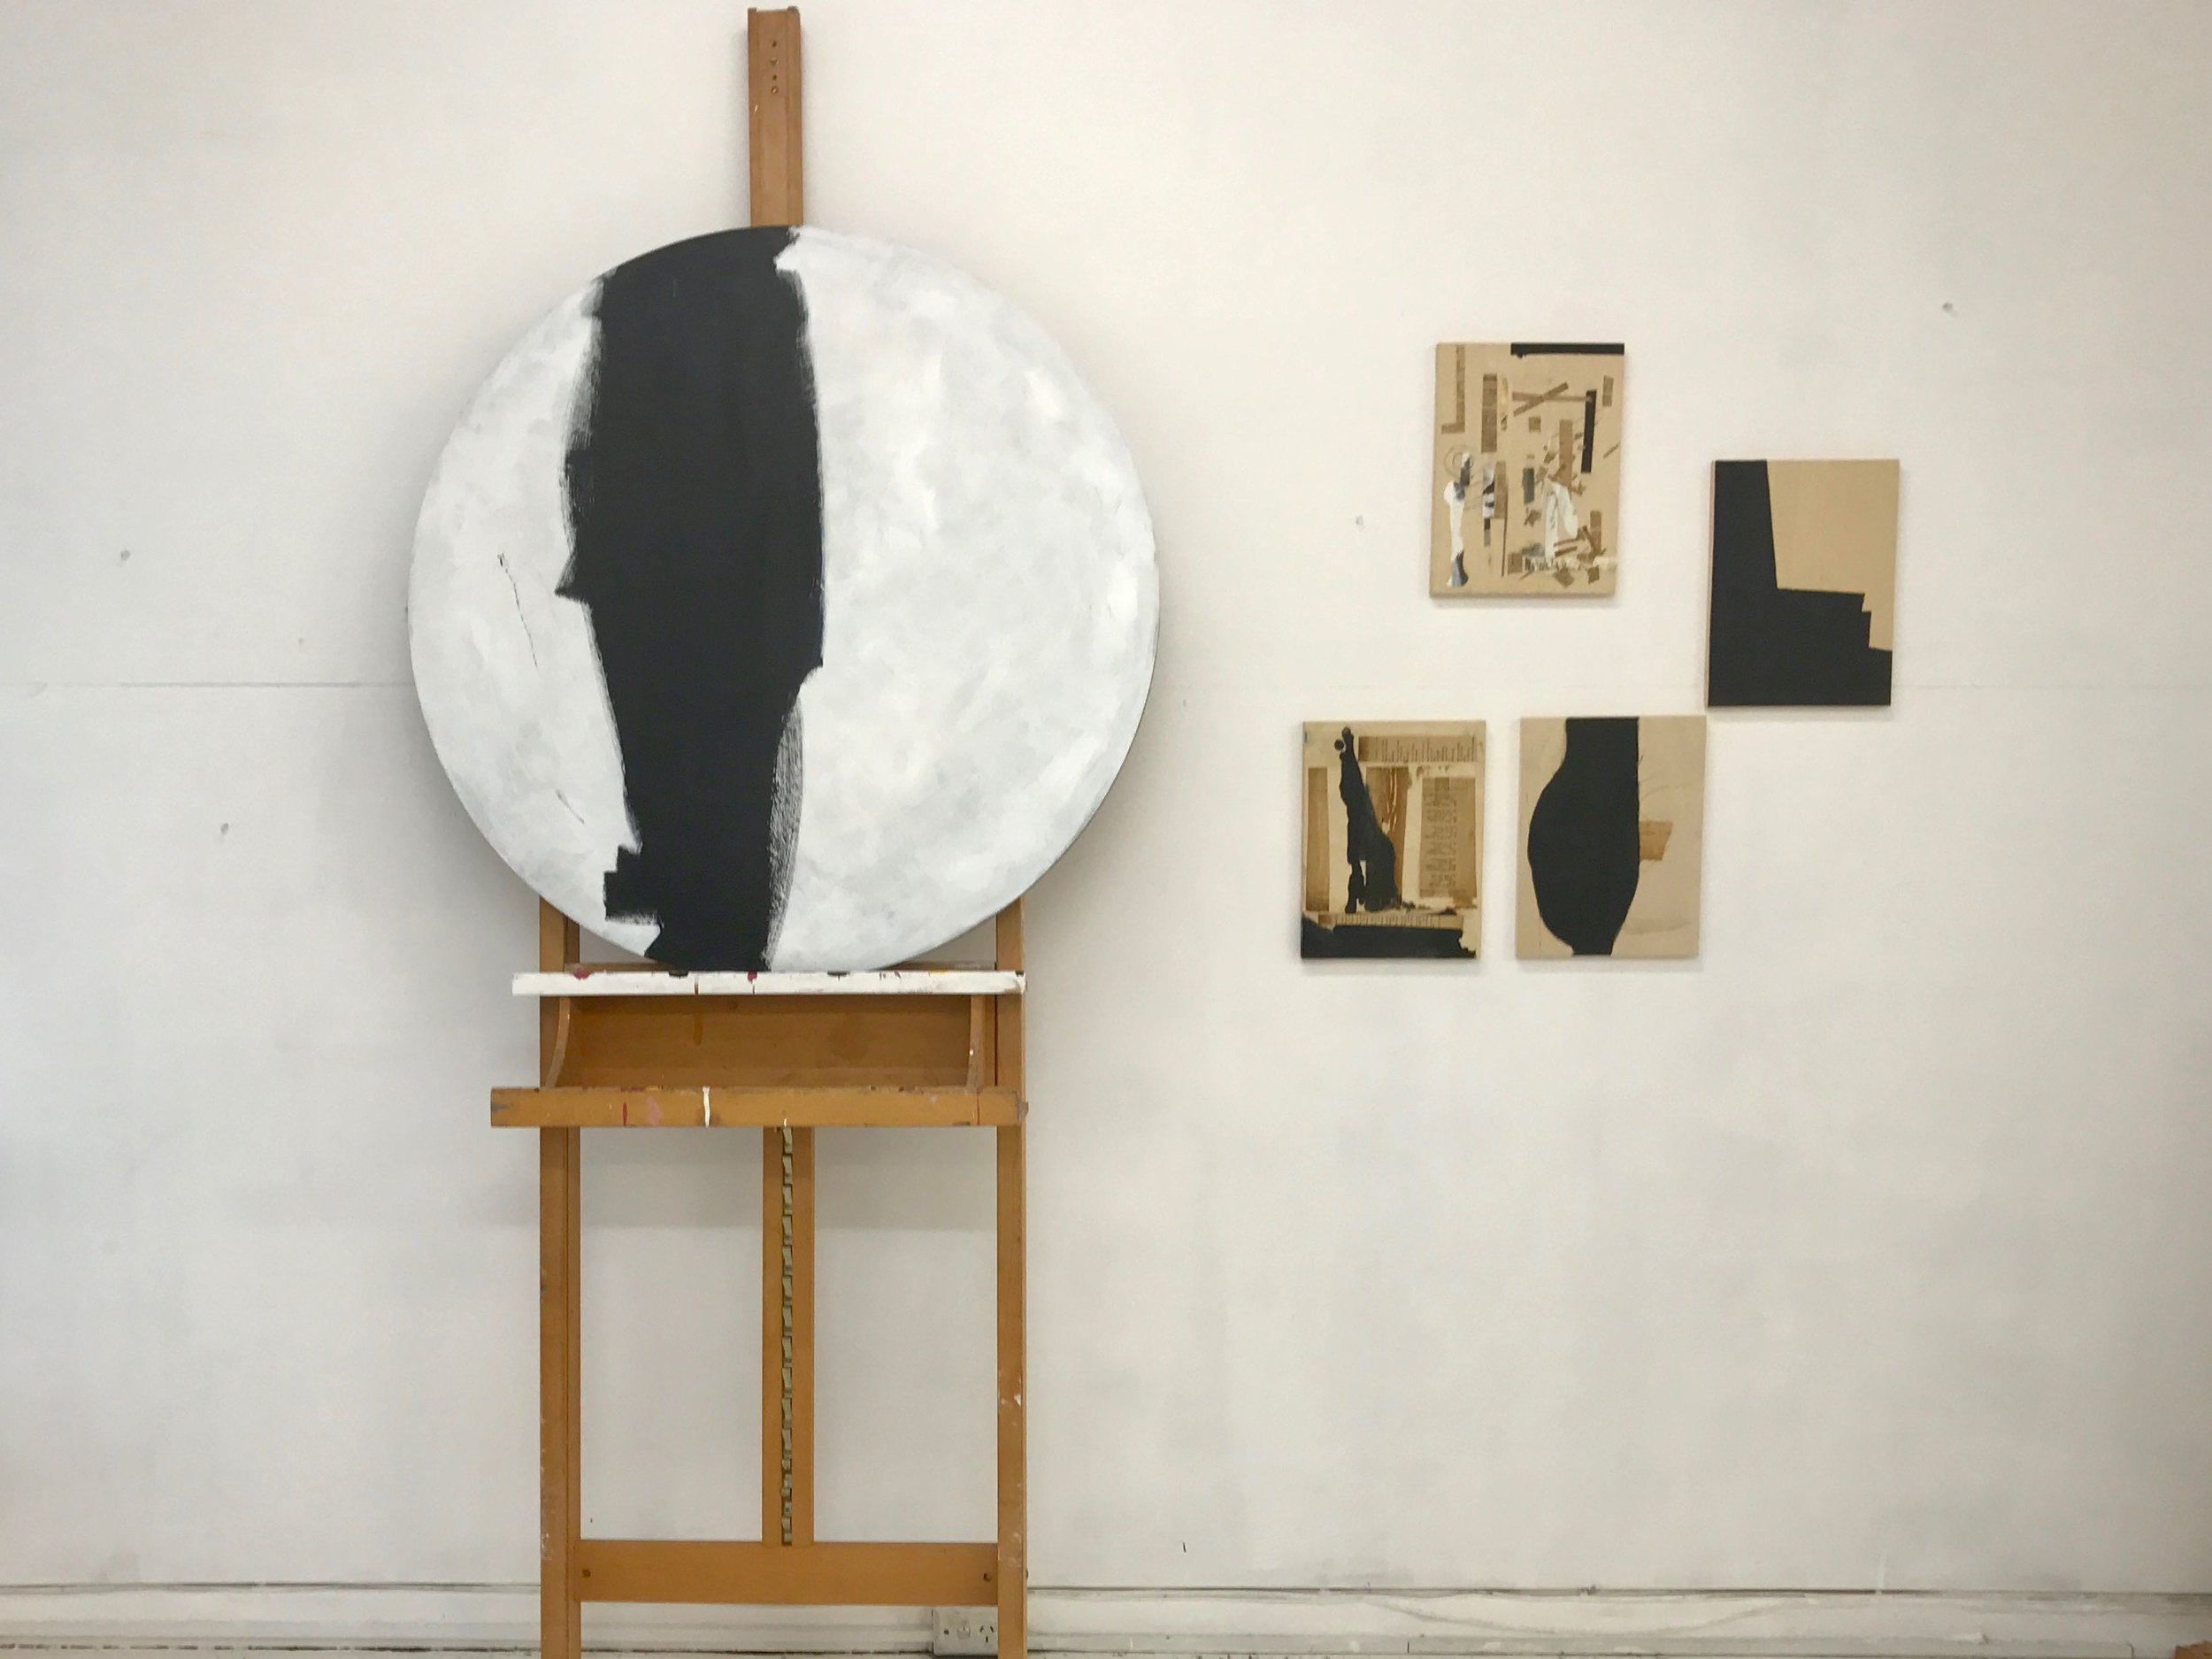 Acrylic and collages on wood, dimensions variable